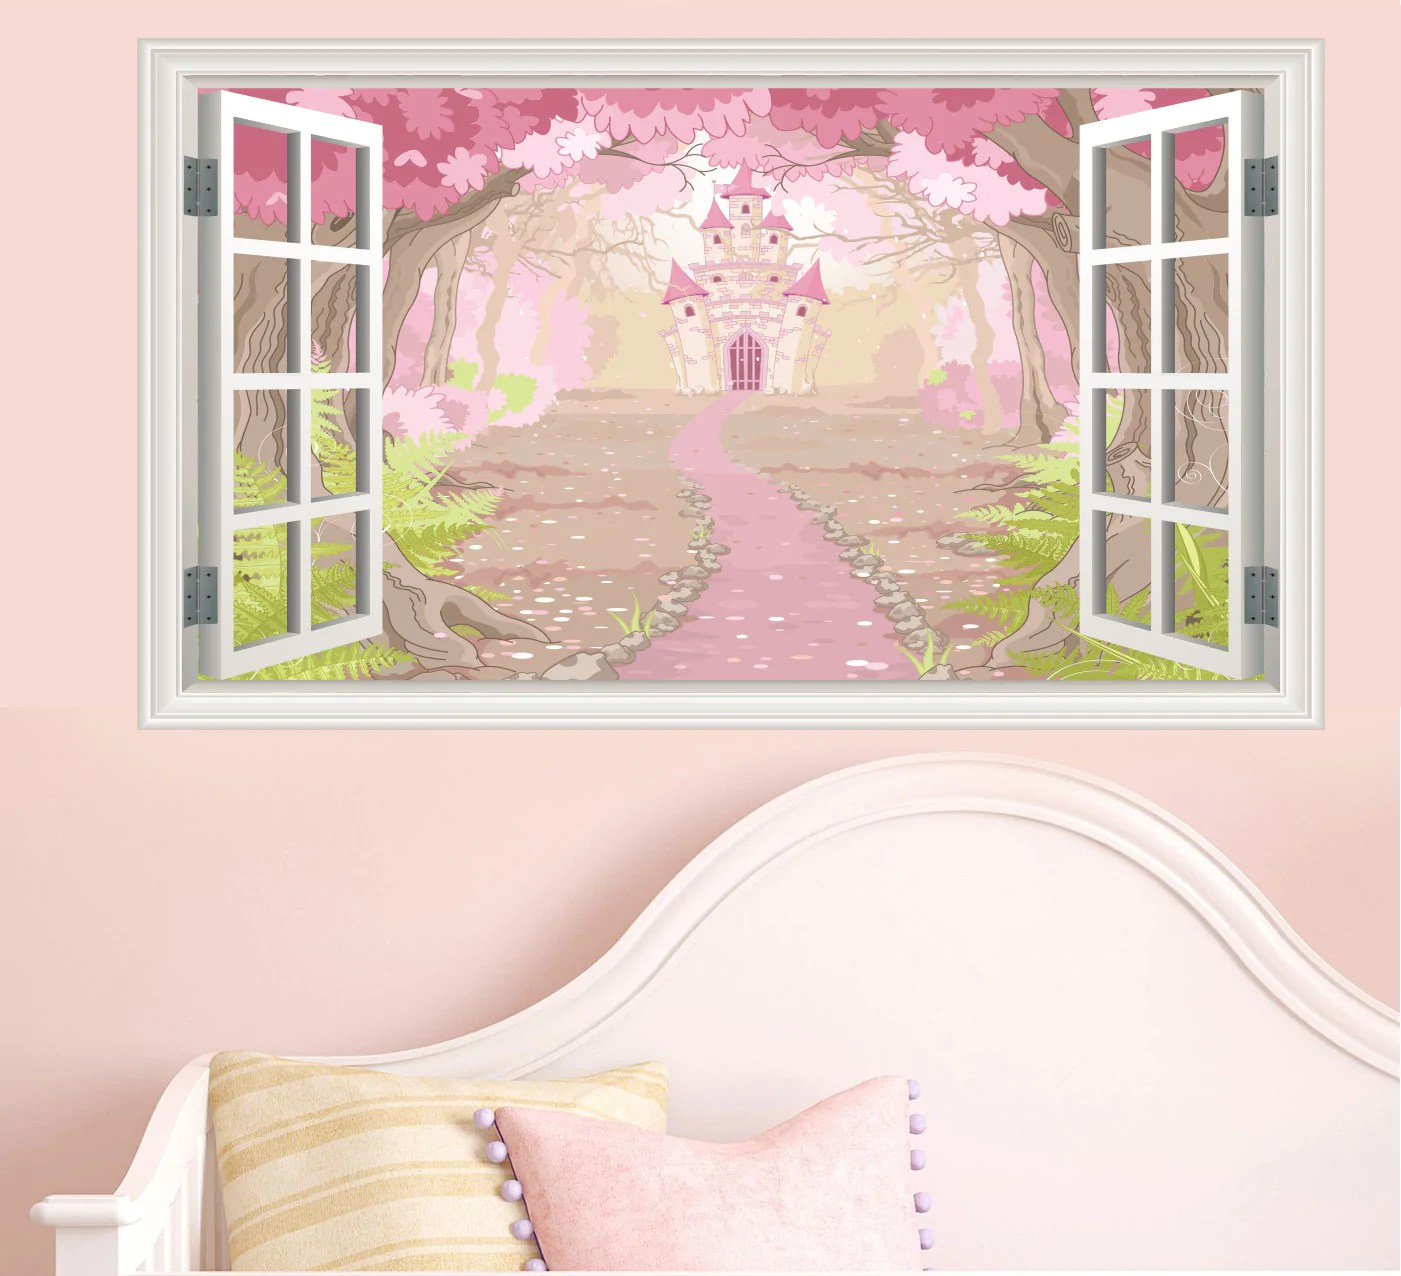 Innovative Enchanted Fairytale Castle Window Scene Wall Stickers Childrens Bedroomdecal Mural Transfers Window Scenes Stickers On Your Wall To Window To Wall Meme To Window To Wall Clean houzz-02 To The Window To The Wall